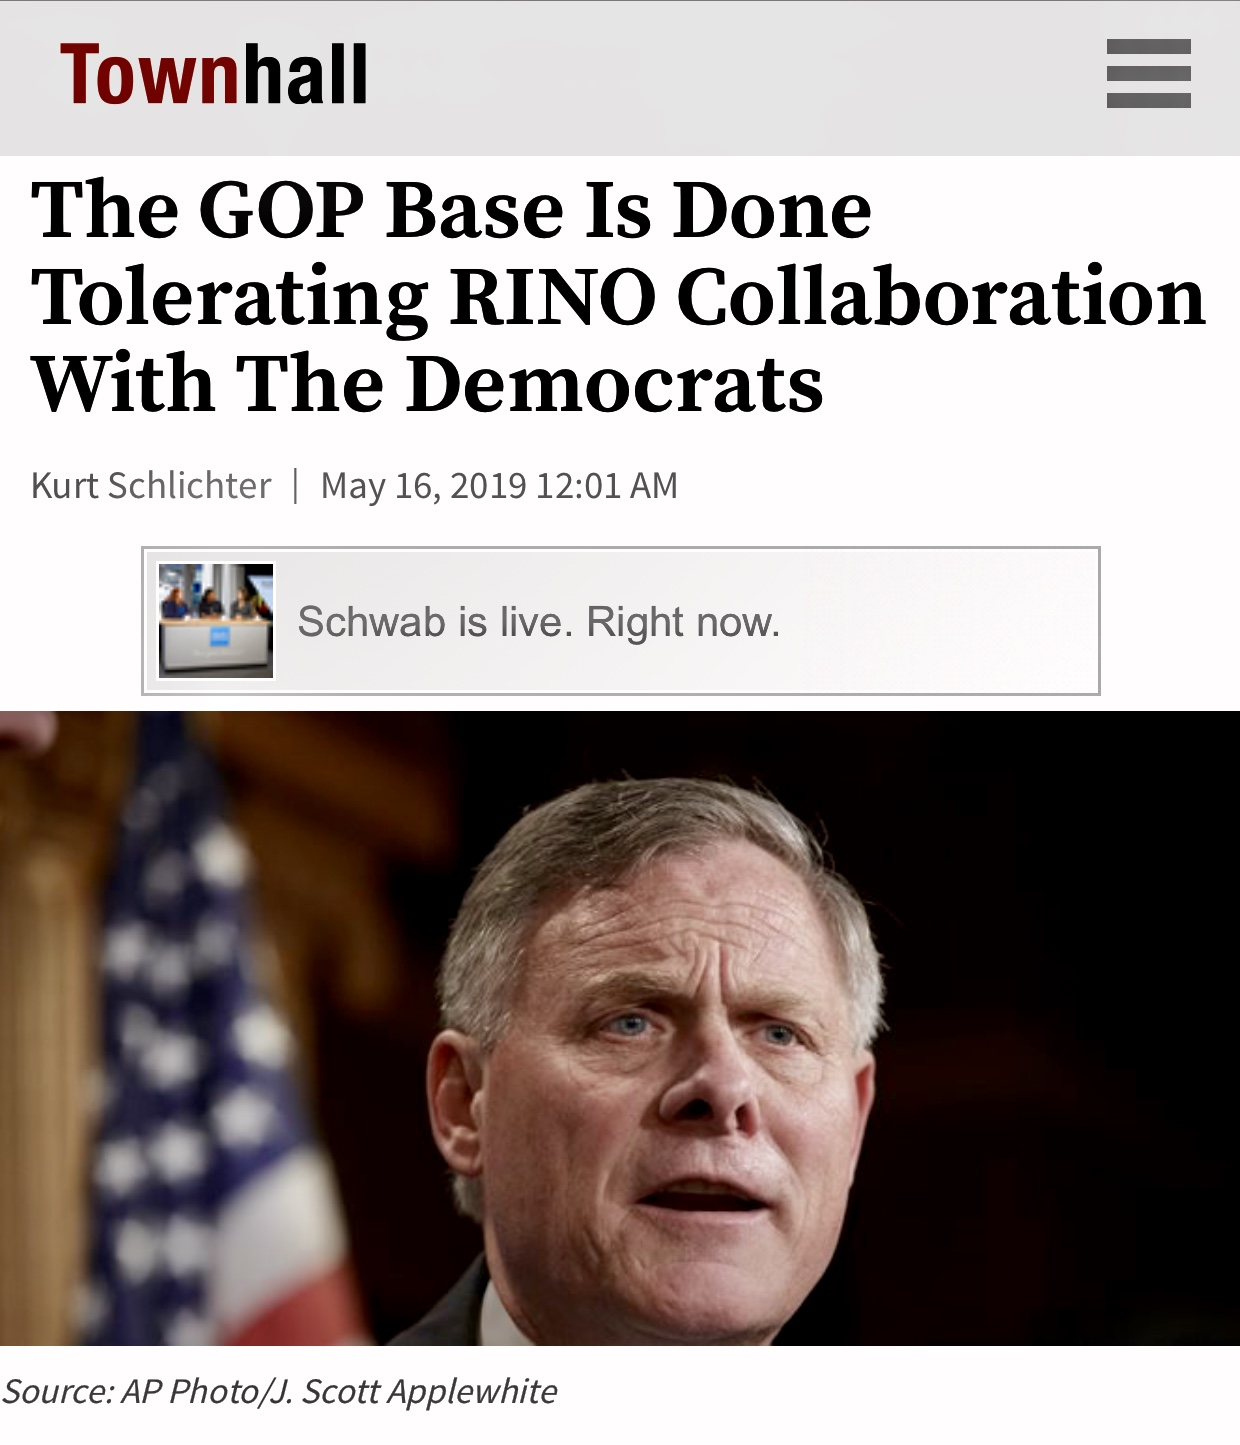 The GOP Base Is Done Tolerating RINO Collaboration With The Democrats